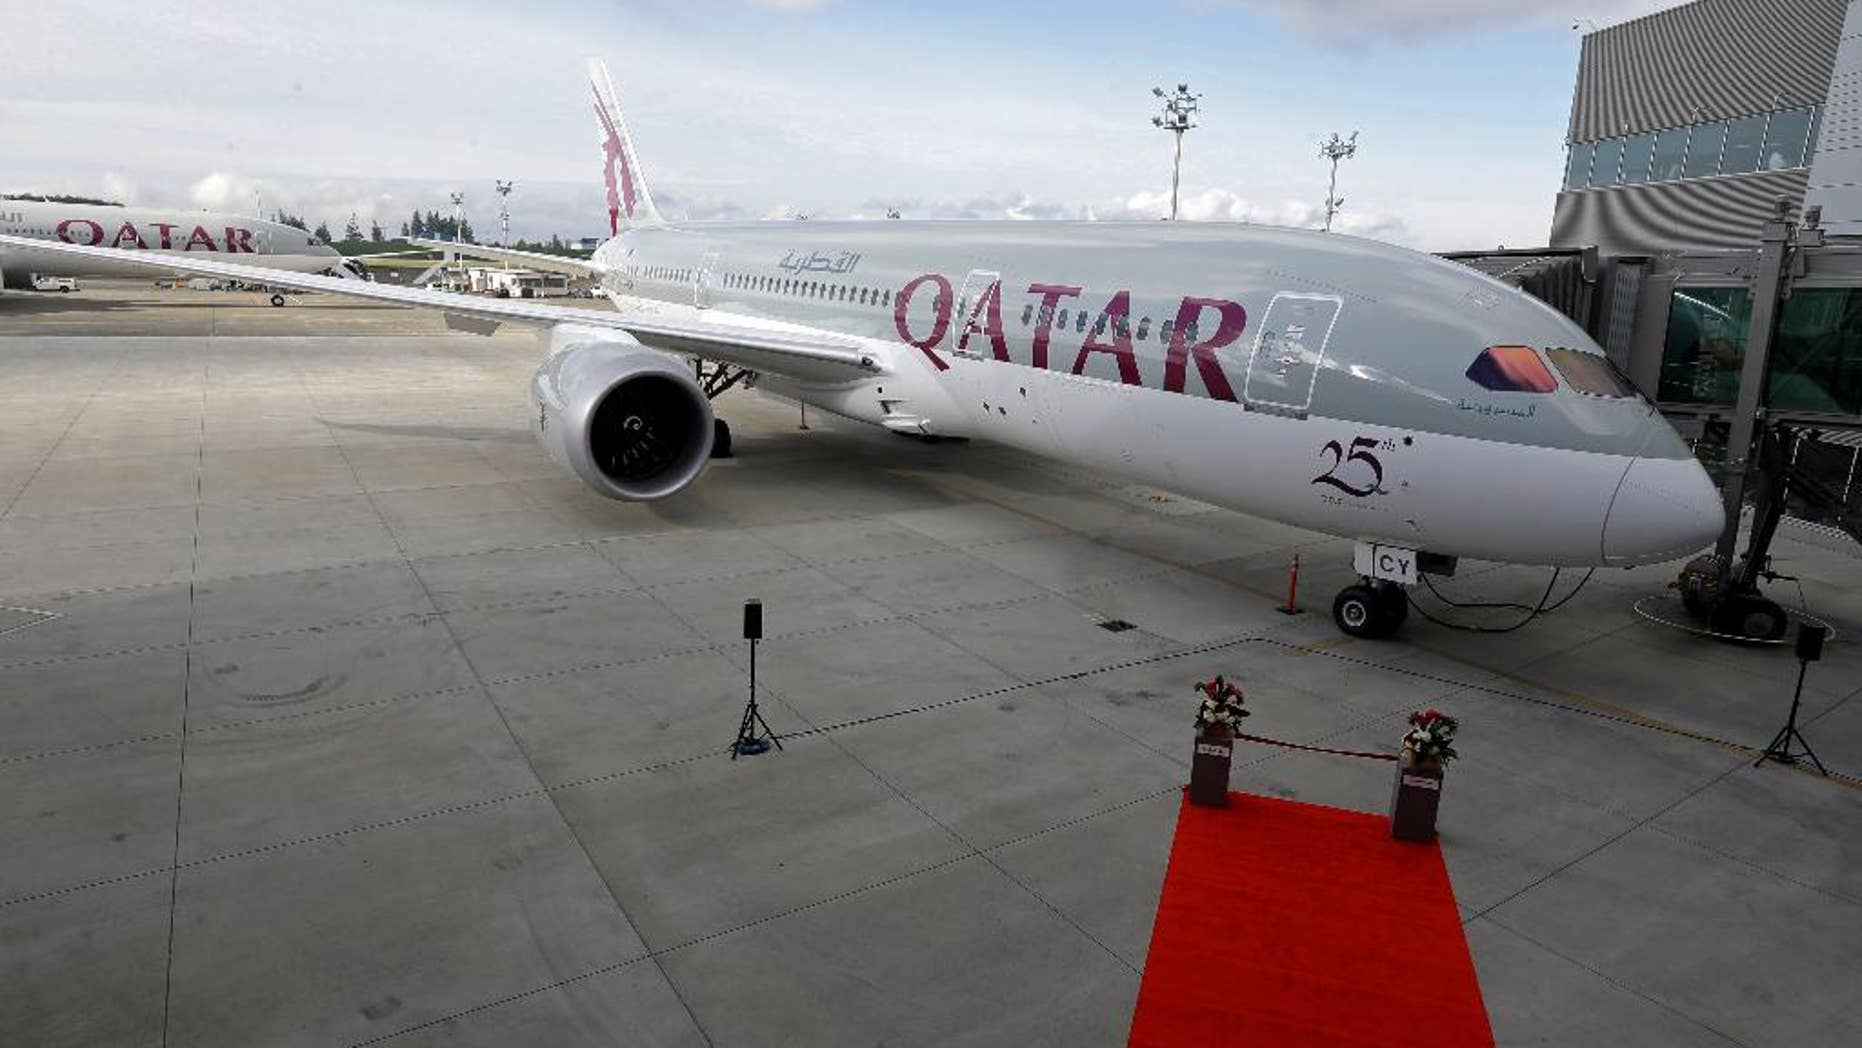 FILE -- In this Nov. 4, 2015  file photo, a Boeing 787 airplane purchased by Qatar Airways is shown during a delivery ceremony in Everett, Wash. Qatar Airways, one of the Middle East's biggest carriers, announced Sunday, July 10, 2016, net profits of $445 million in 2016, up from $103 million the previous year. It says the airline's revenue rose from $9.3 billion in 2015 to $9.6 billion. Qatar Airways Group Chief Executive Akbar Al-Baker said it was the 19-year-old airline's best fiscal year to date. (AP Photo/Ted S. Warren, File)